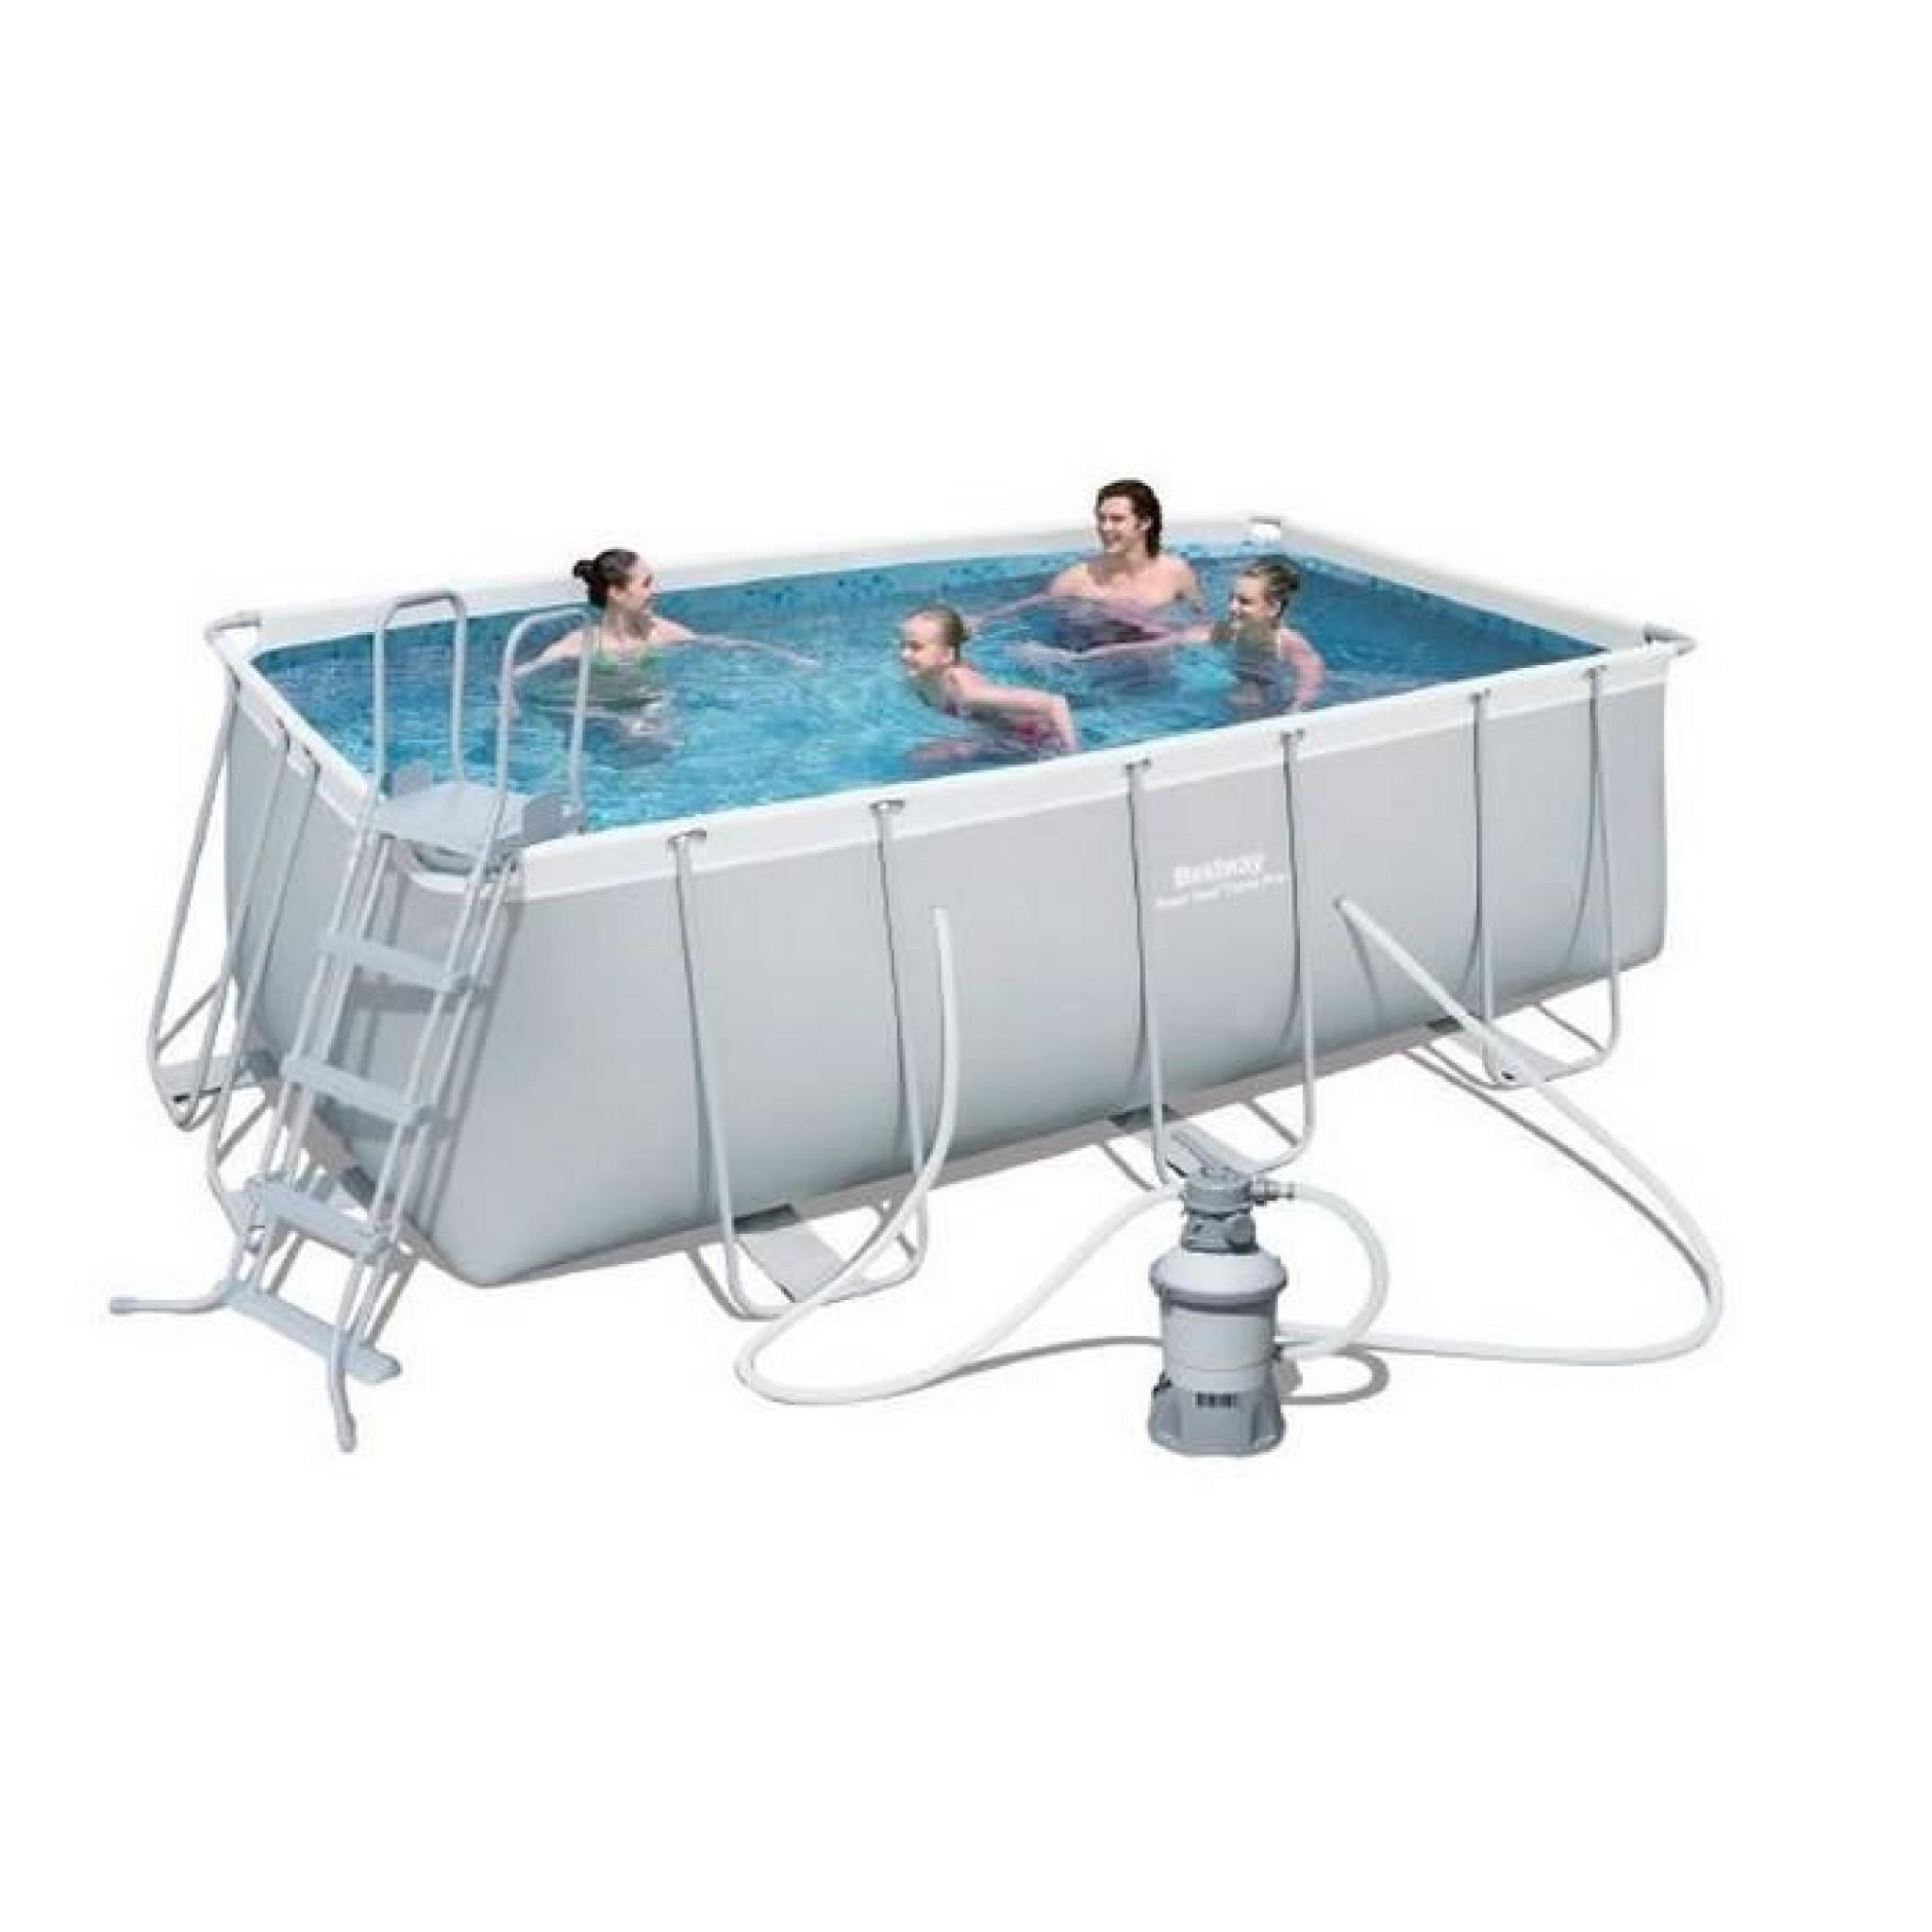 Bestway piscine tubulaire rectangulaire for Piscine hors sol bestway pas cher